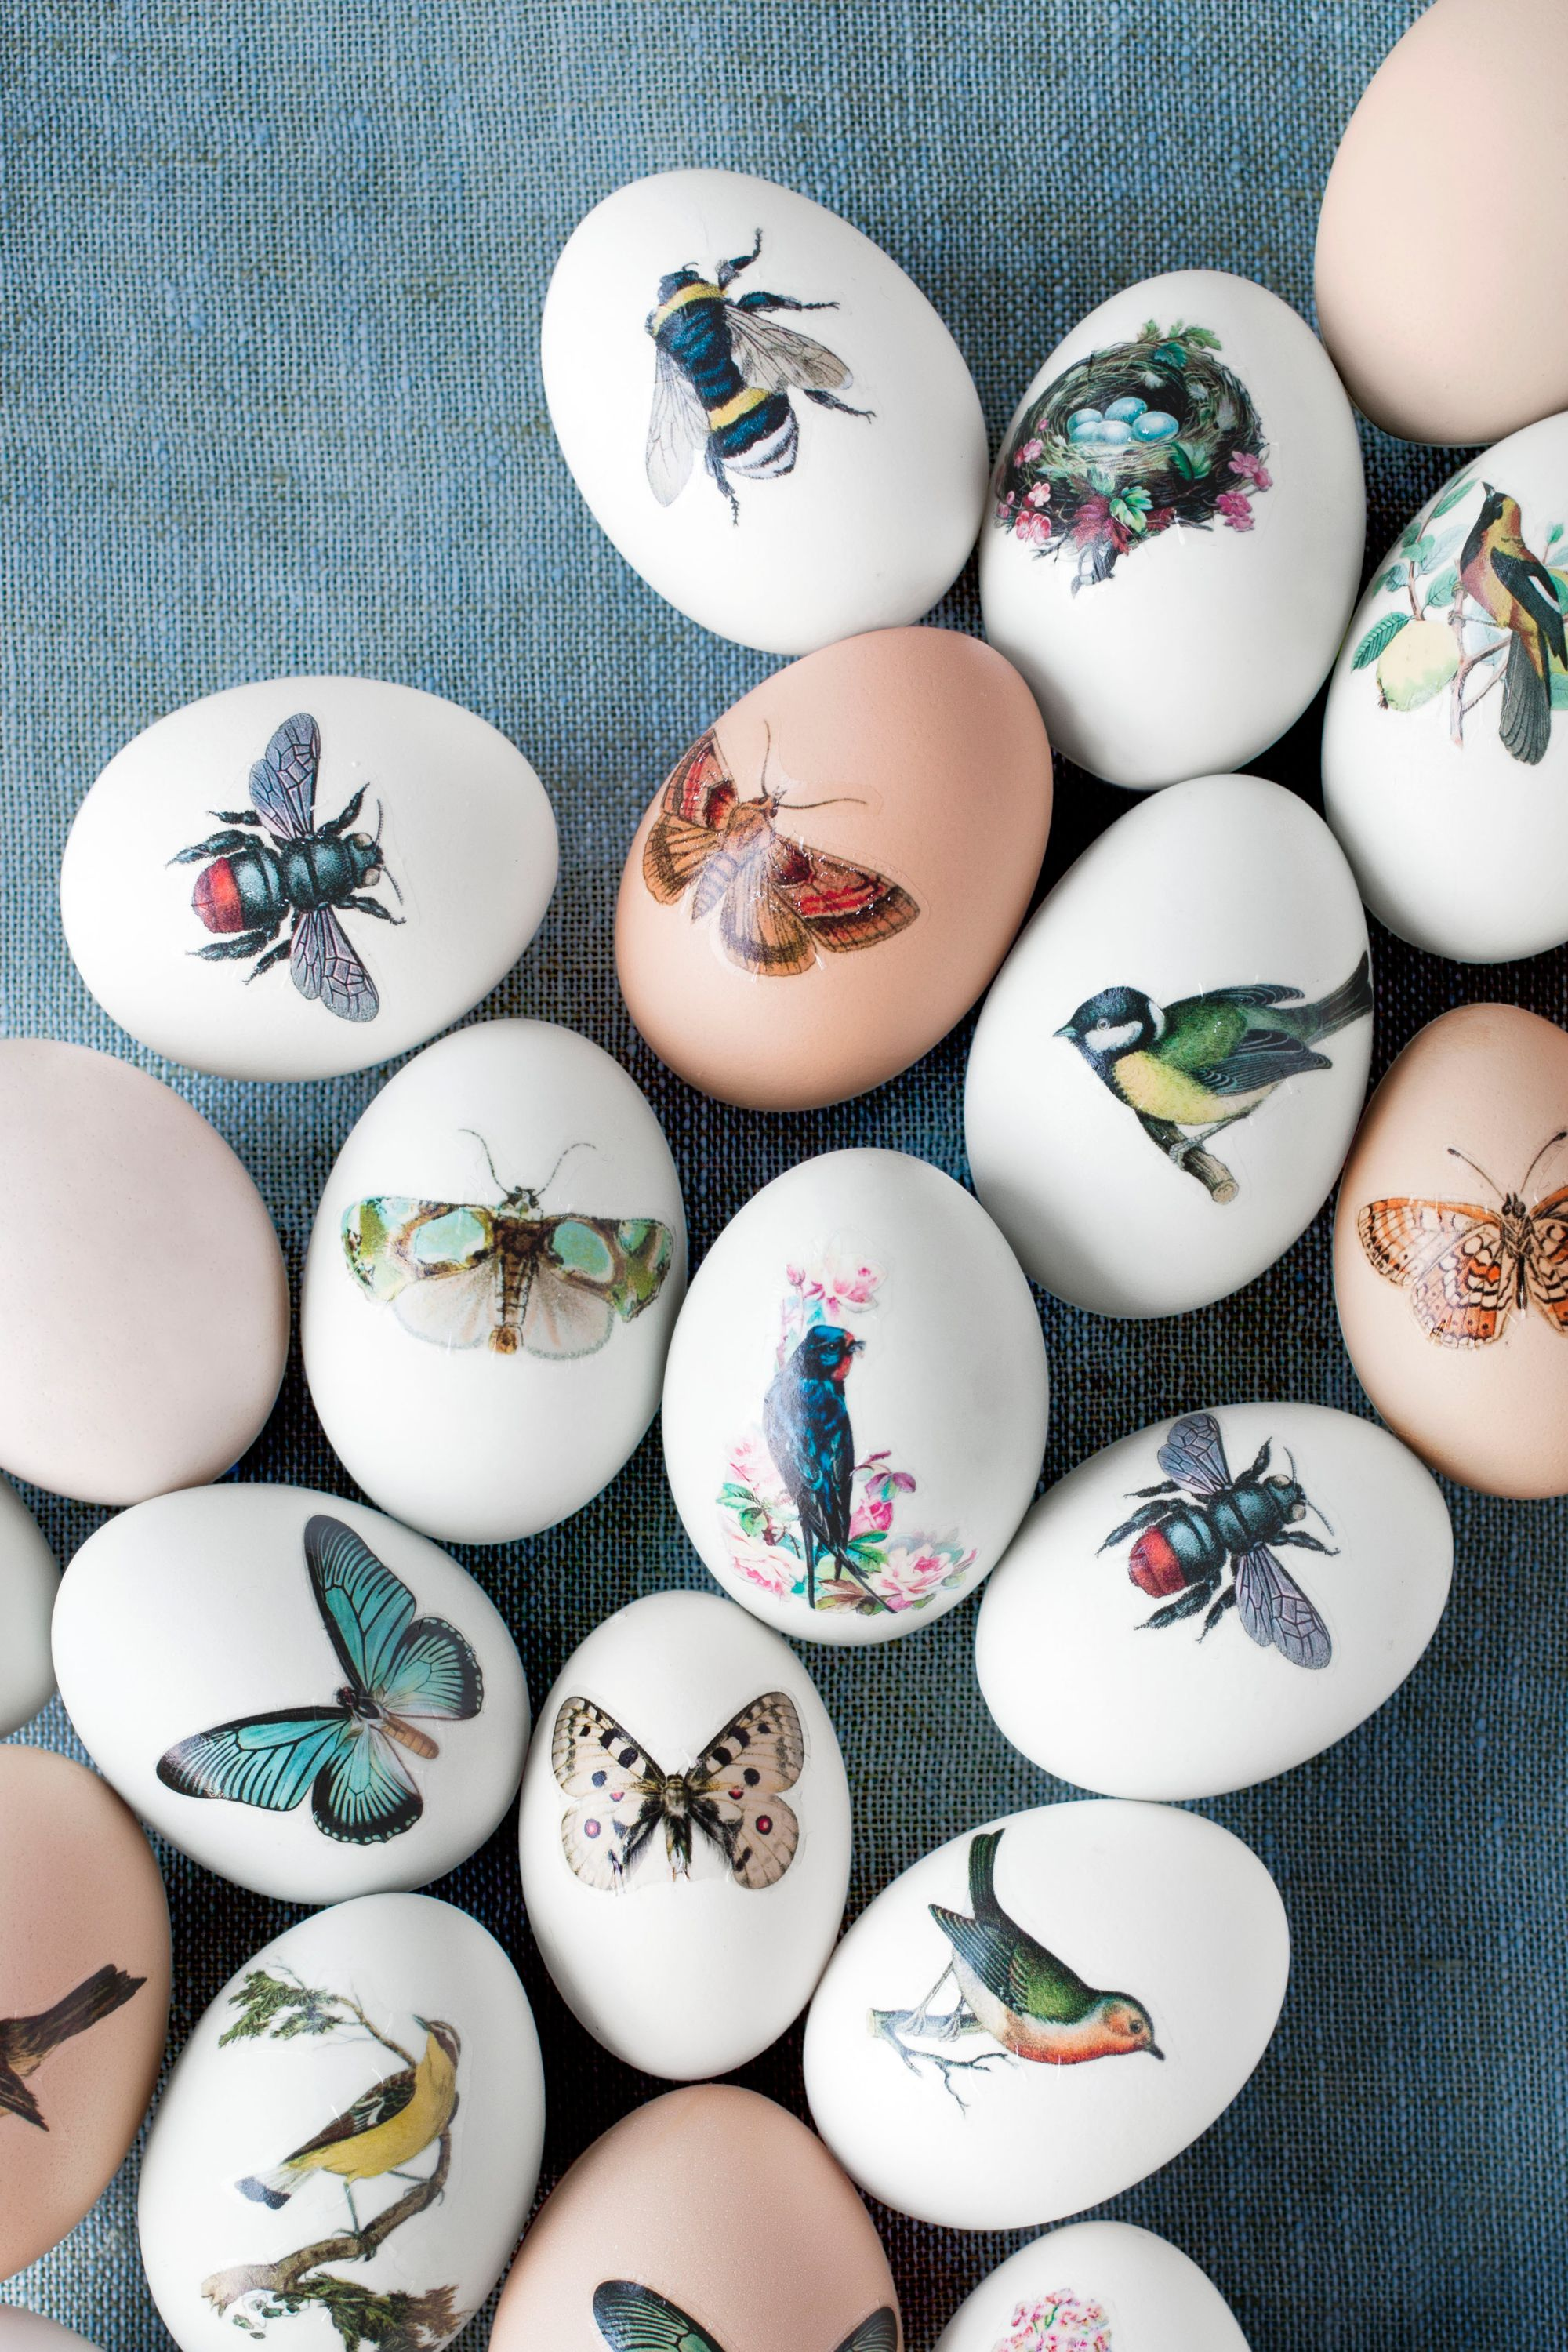 46 Easy Easter Crafts Ideas for Easter DIY Decorations & Gifts